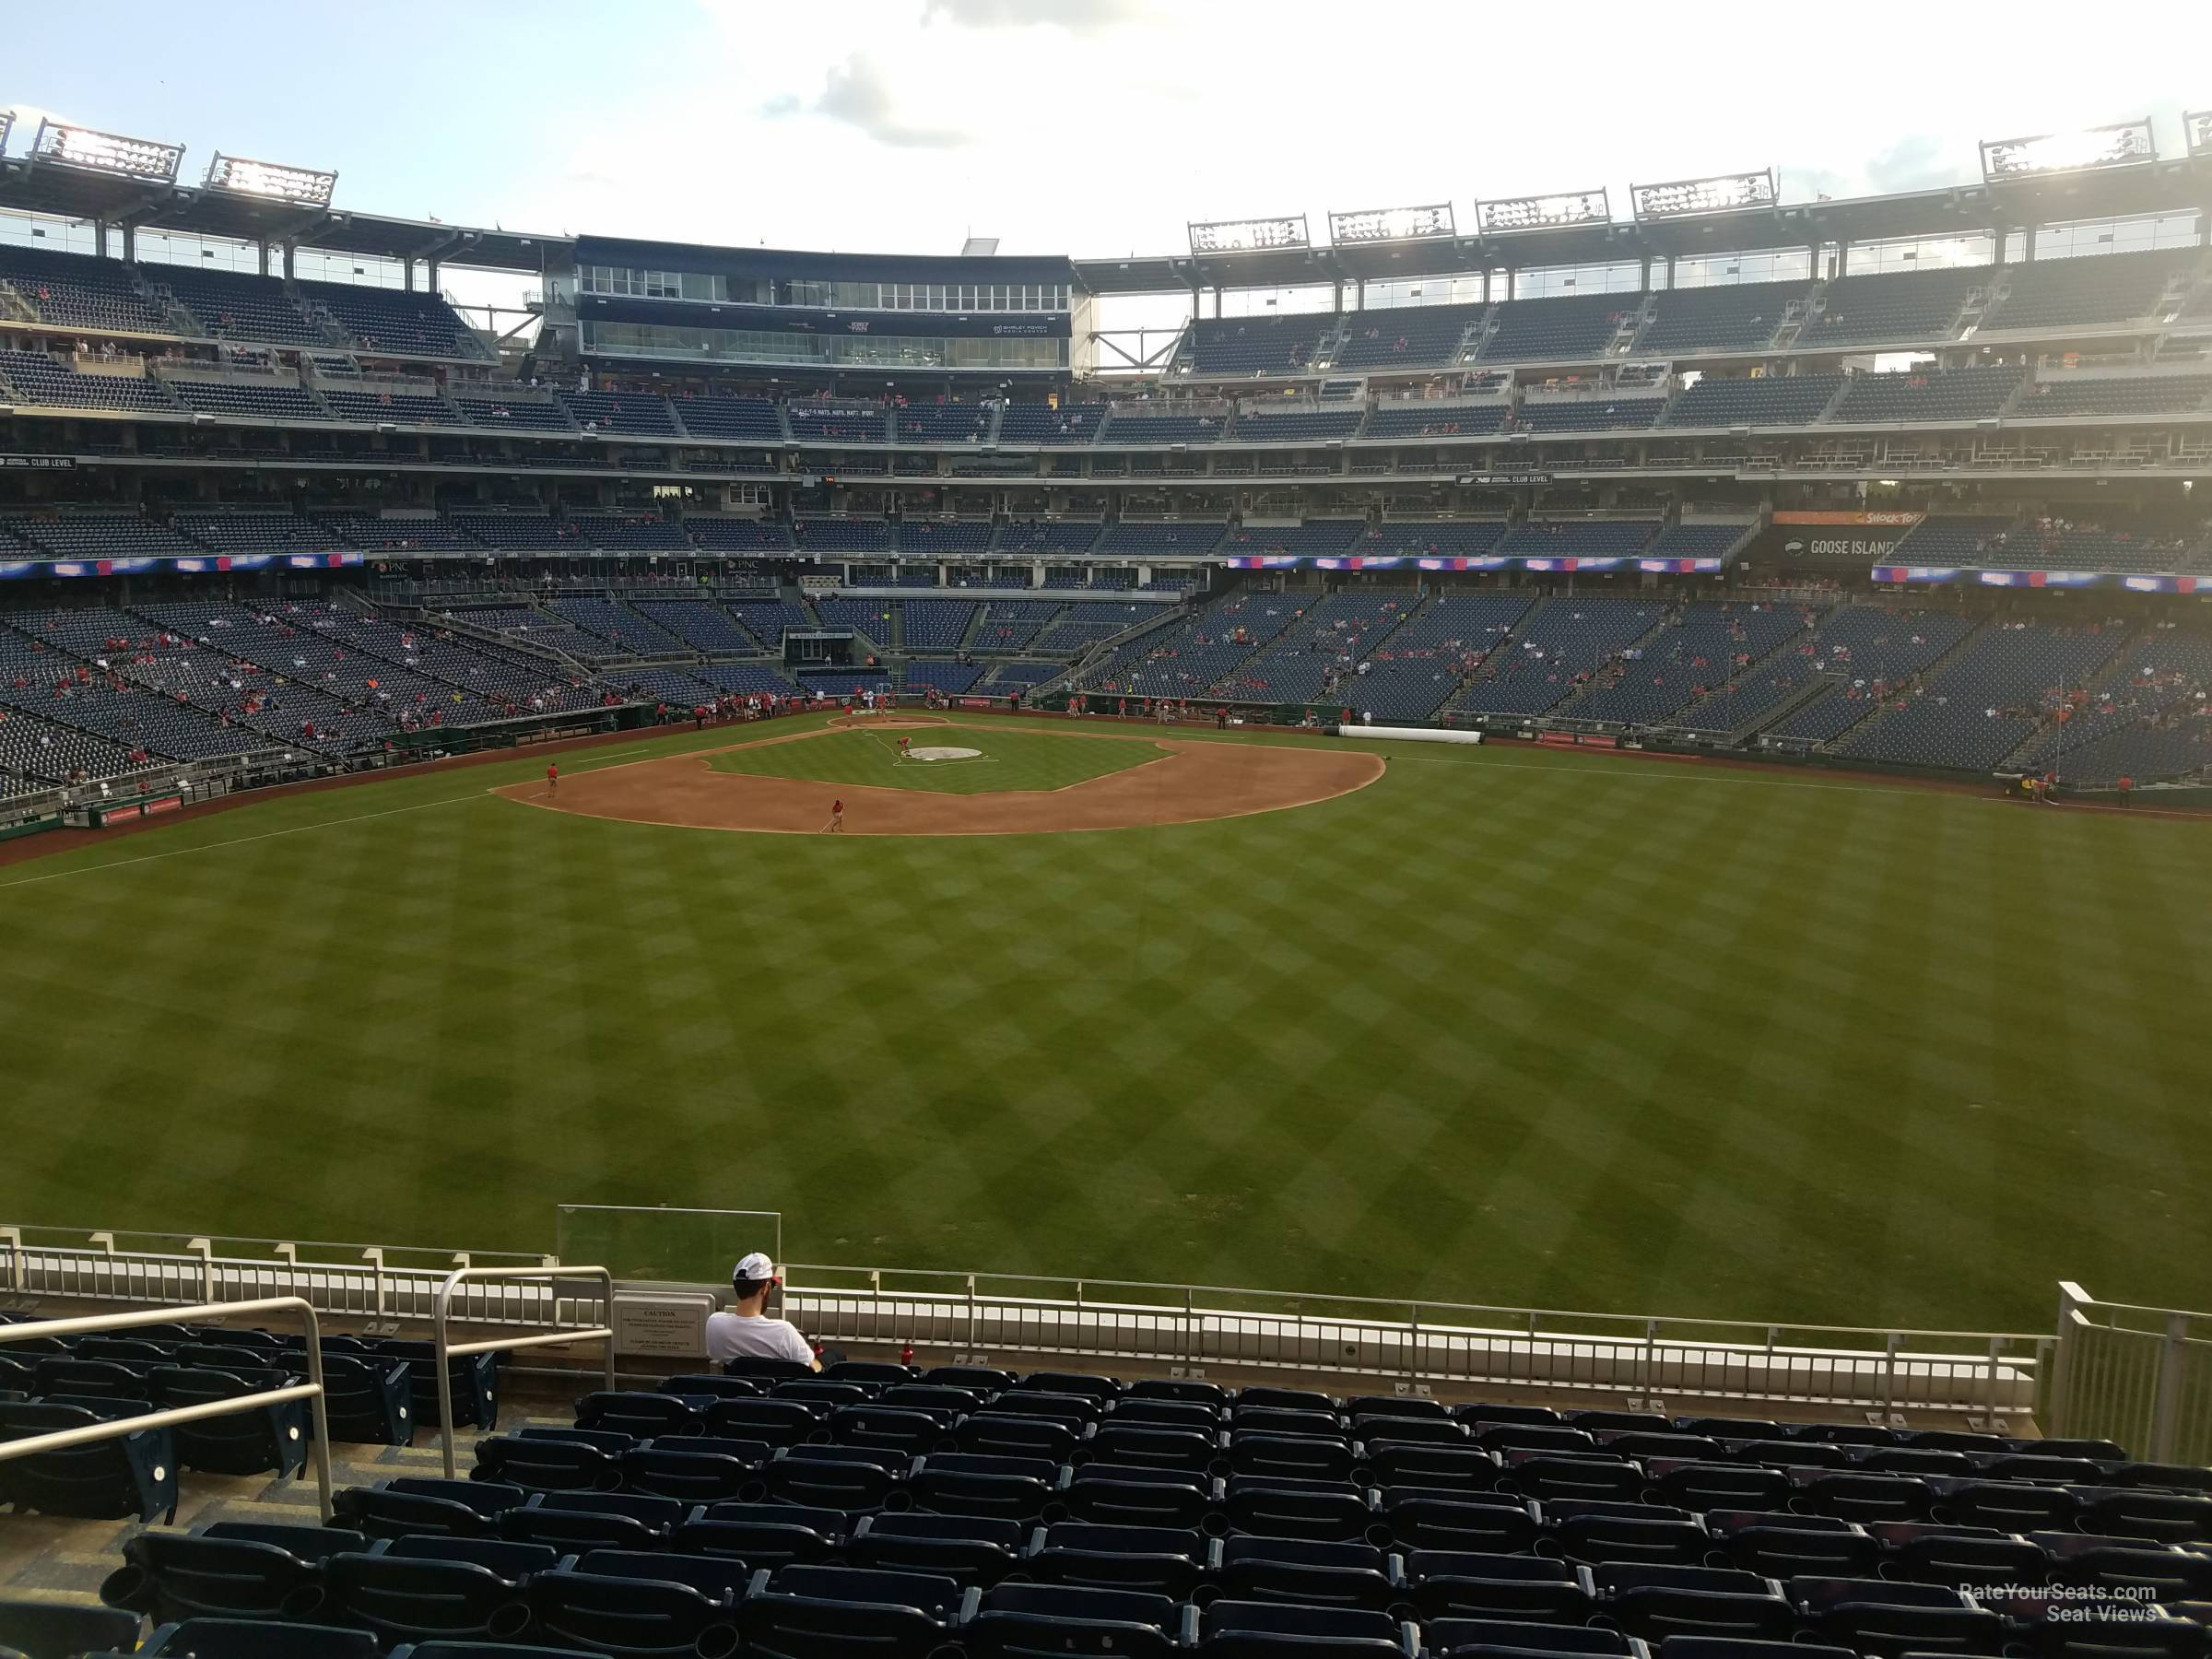 Section 243 seat view